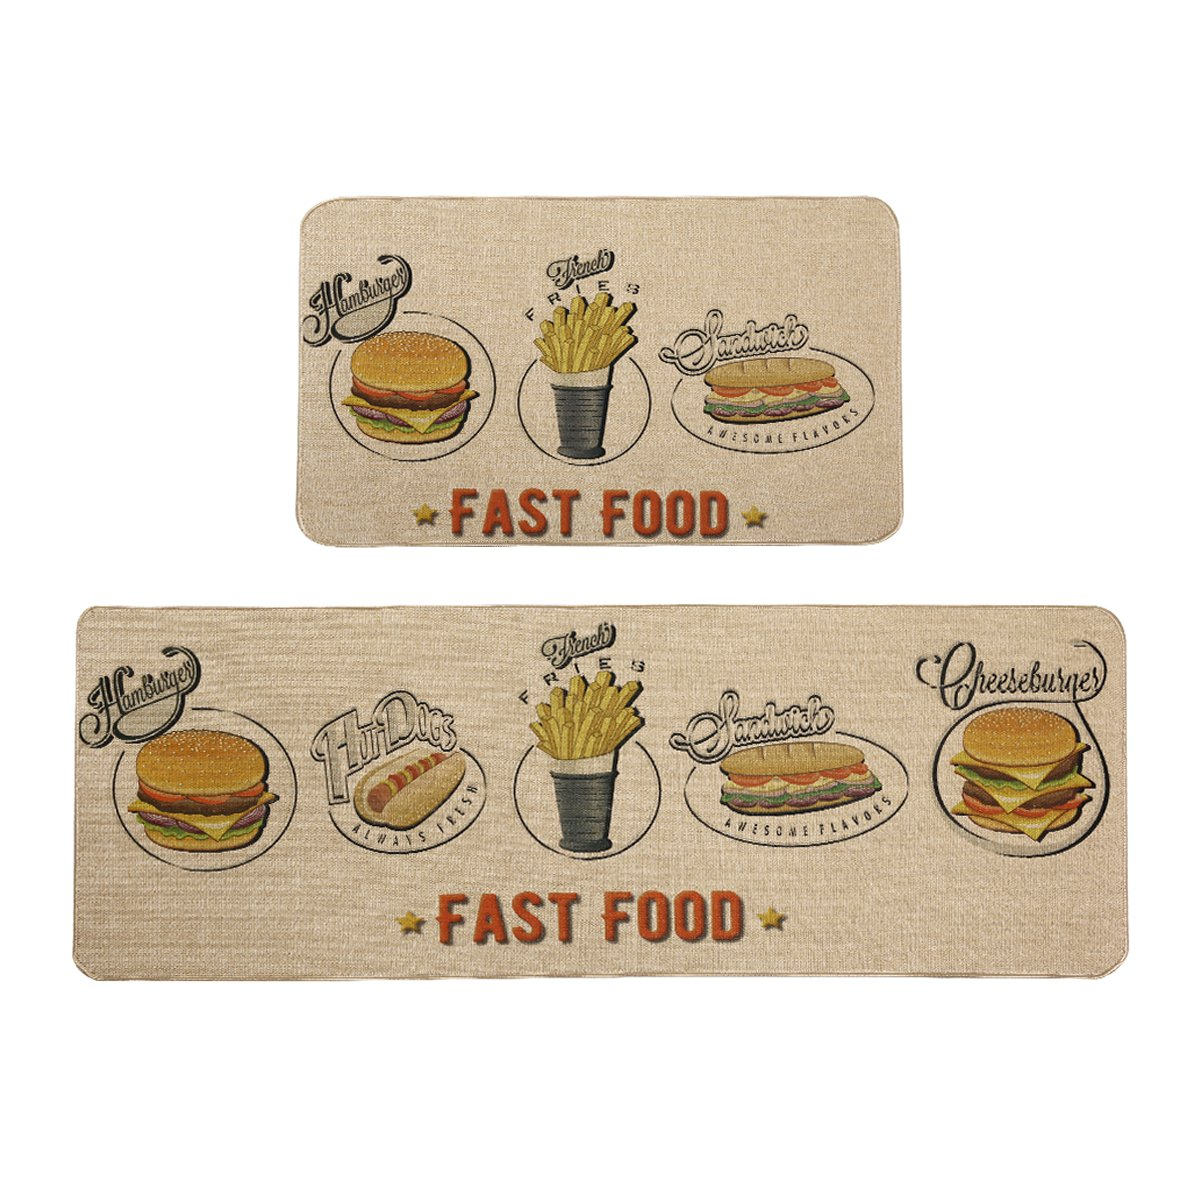 MAYSHINE Kitchen Rugs Sets and Mats Anti-Fatigue Comfort Non-Slip Door mat Natural Rubber Backed - 17x29.5+17x47 inch MSUS18051422